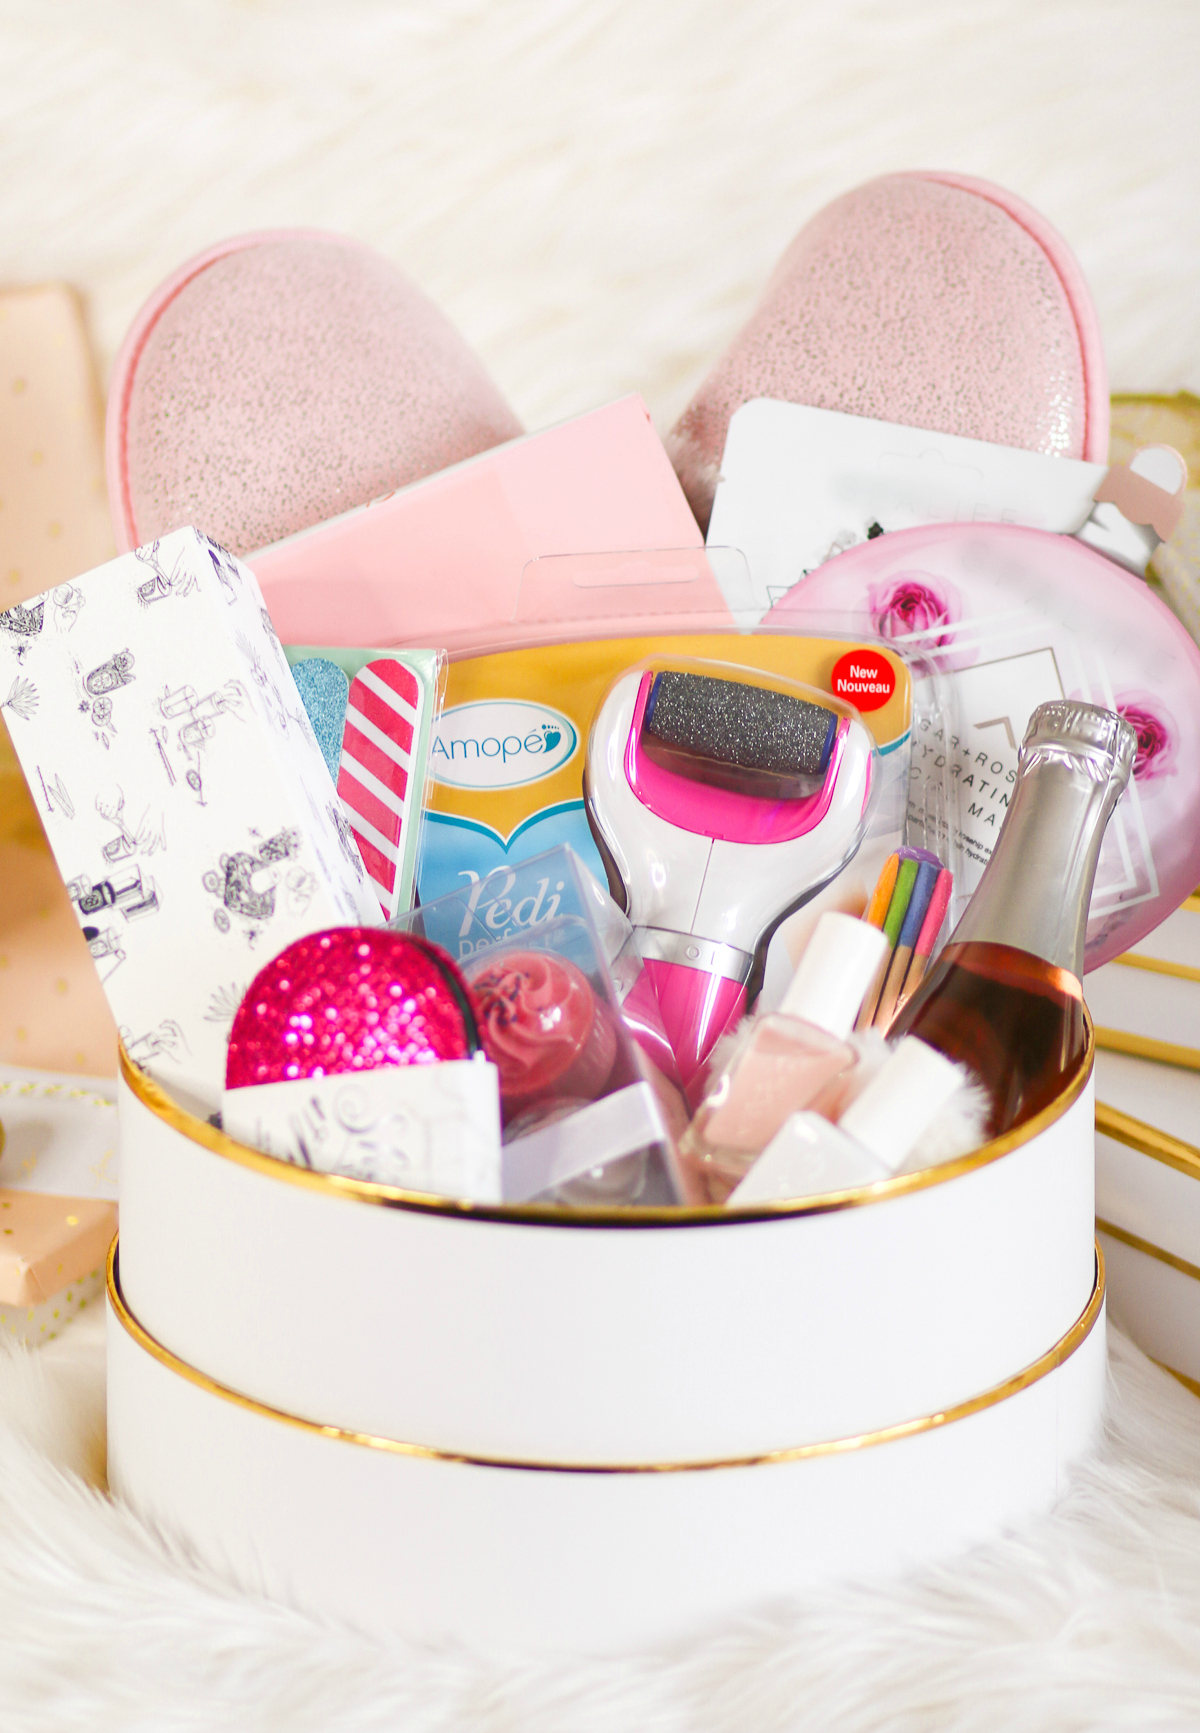 DIY spa gift basket consisting of 12 self care gift ideas she's guaranteed to love, including the Amope Pedi Perfect Foot File, by southern blogger Stephanie Ziajka from Diary of a Debutante